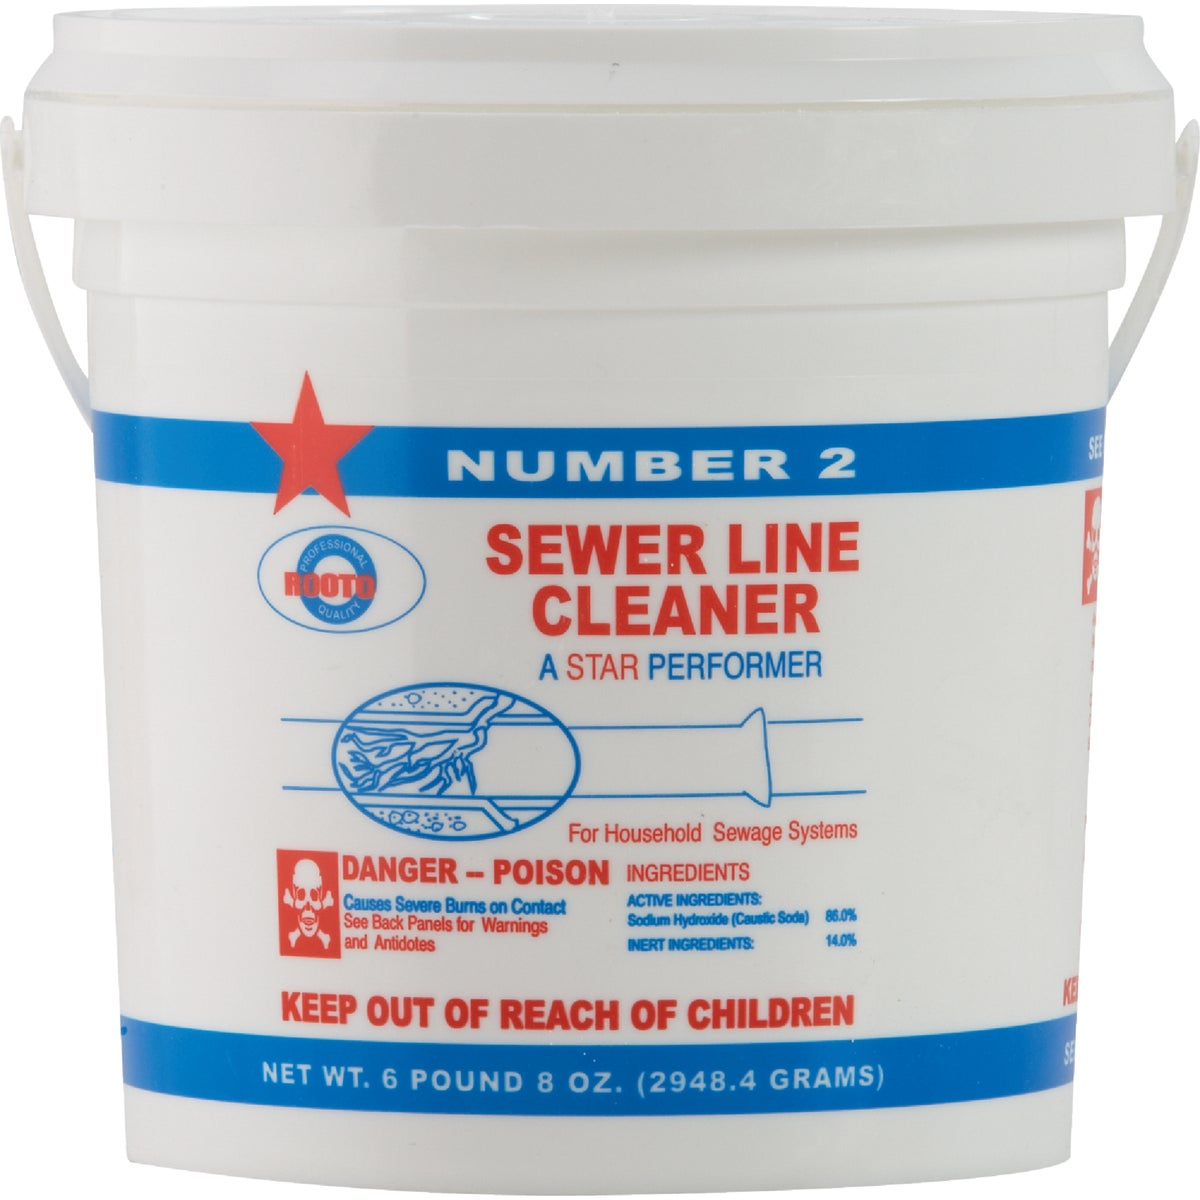 6-1/2LB SEWER CLEANER